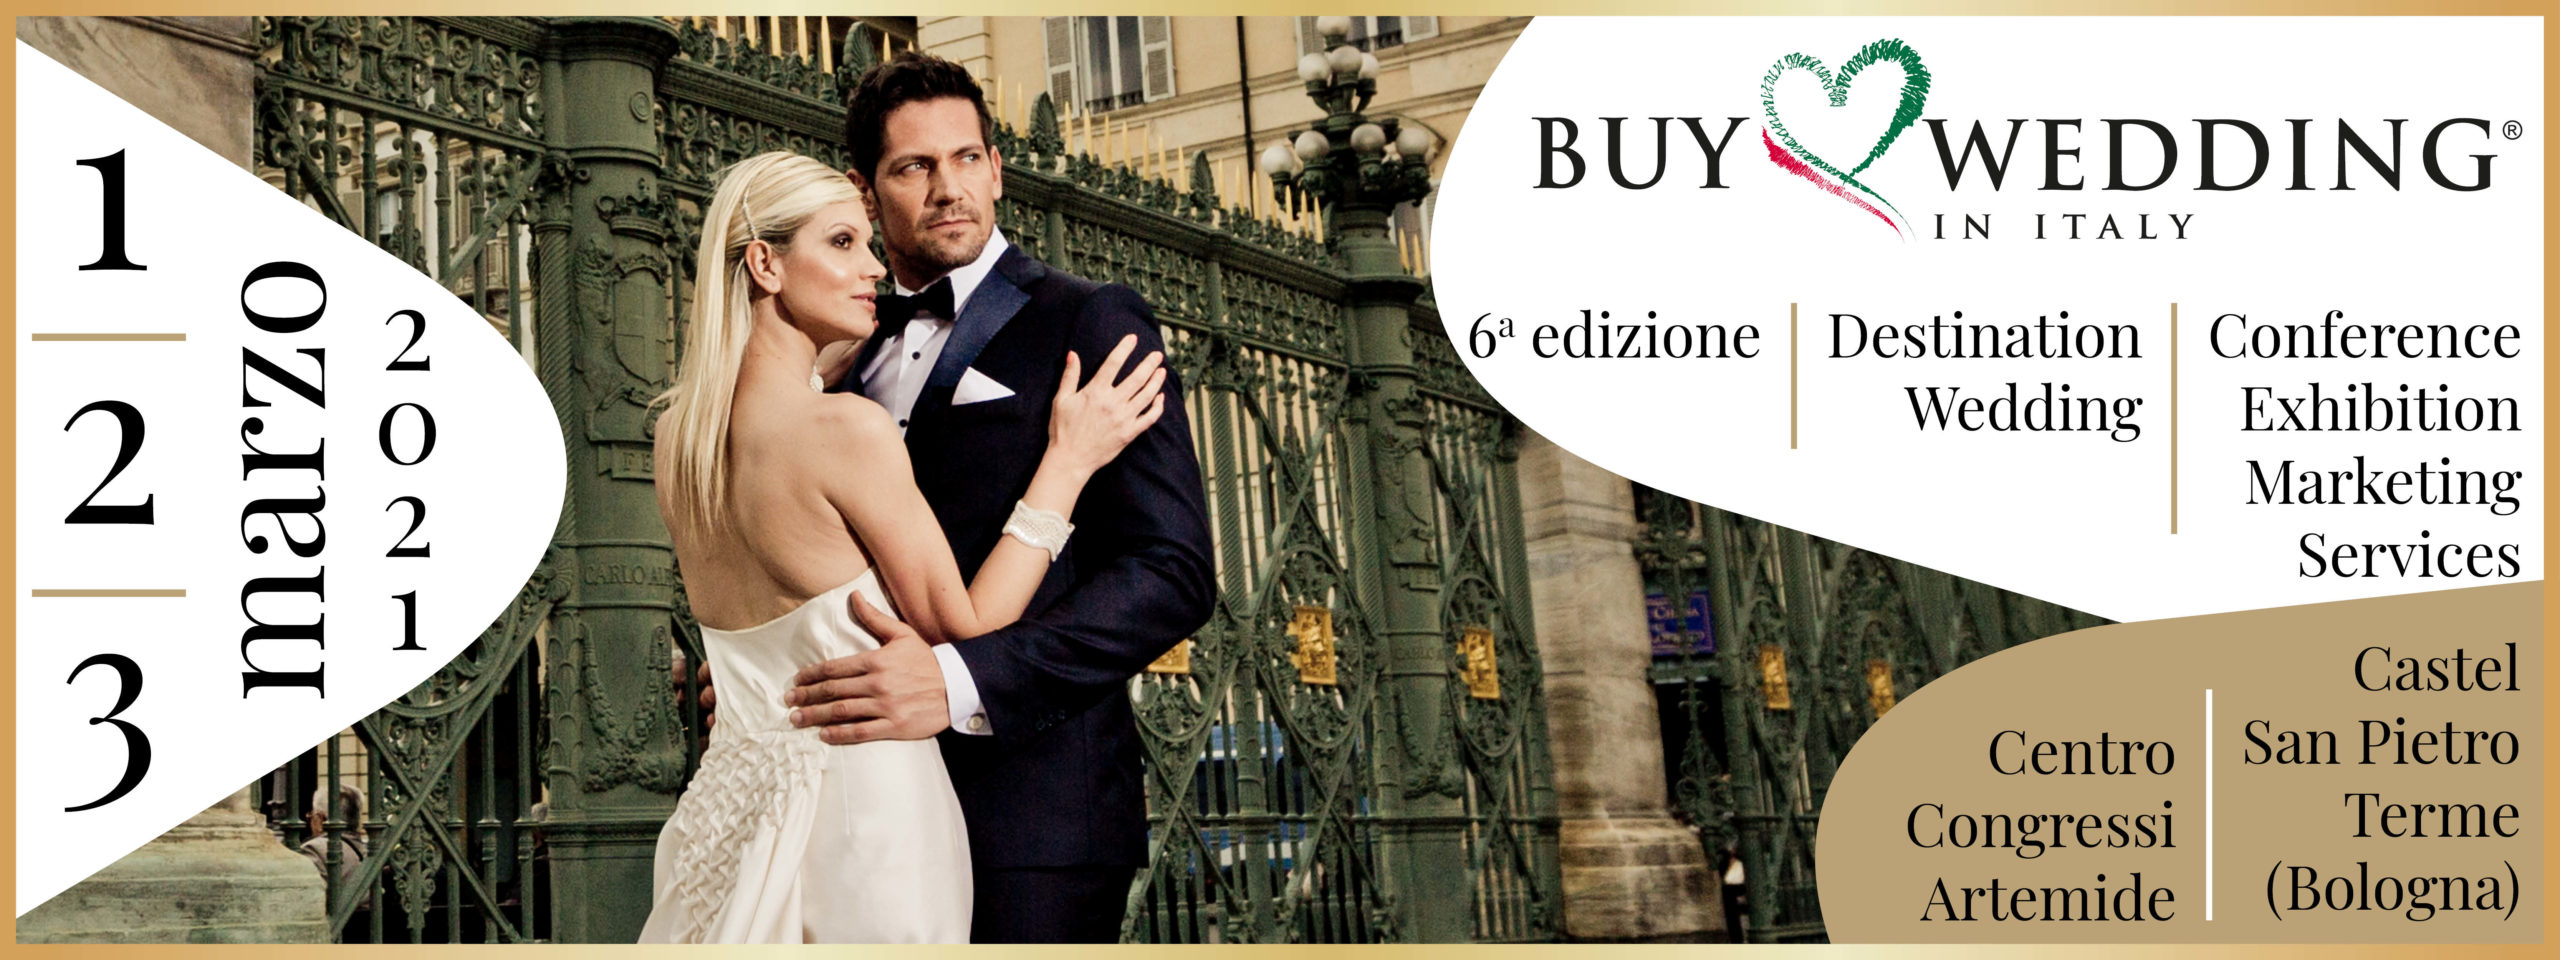 BuyWeddinginItaly